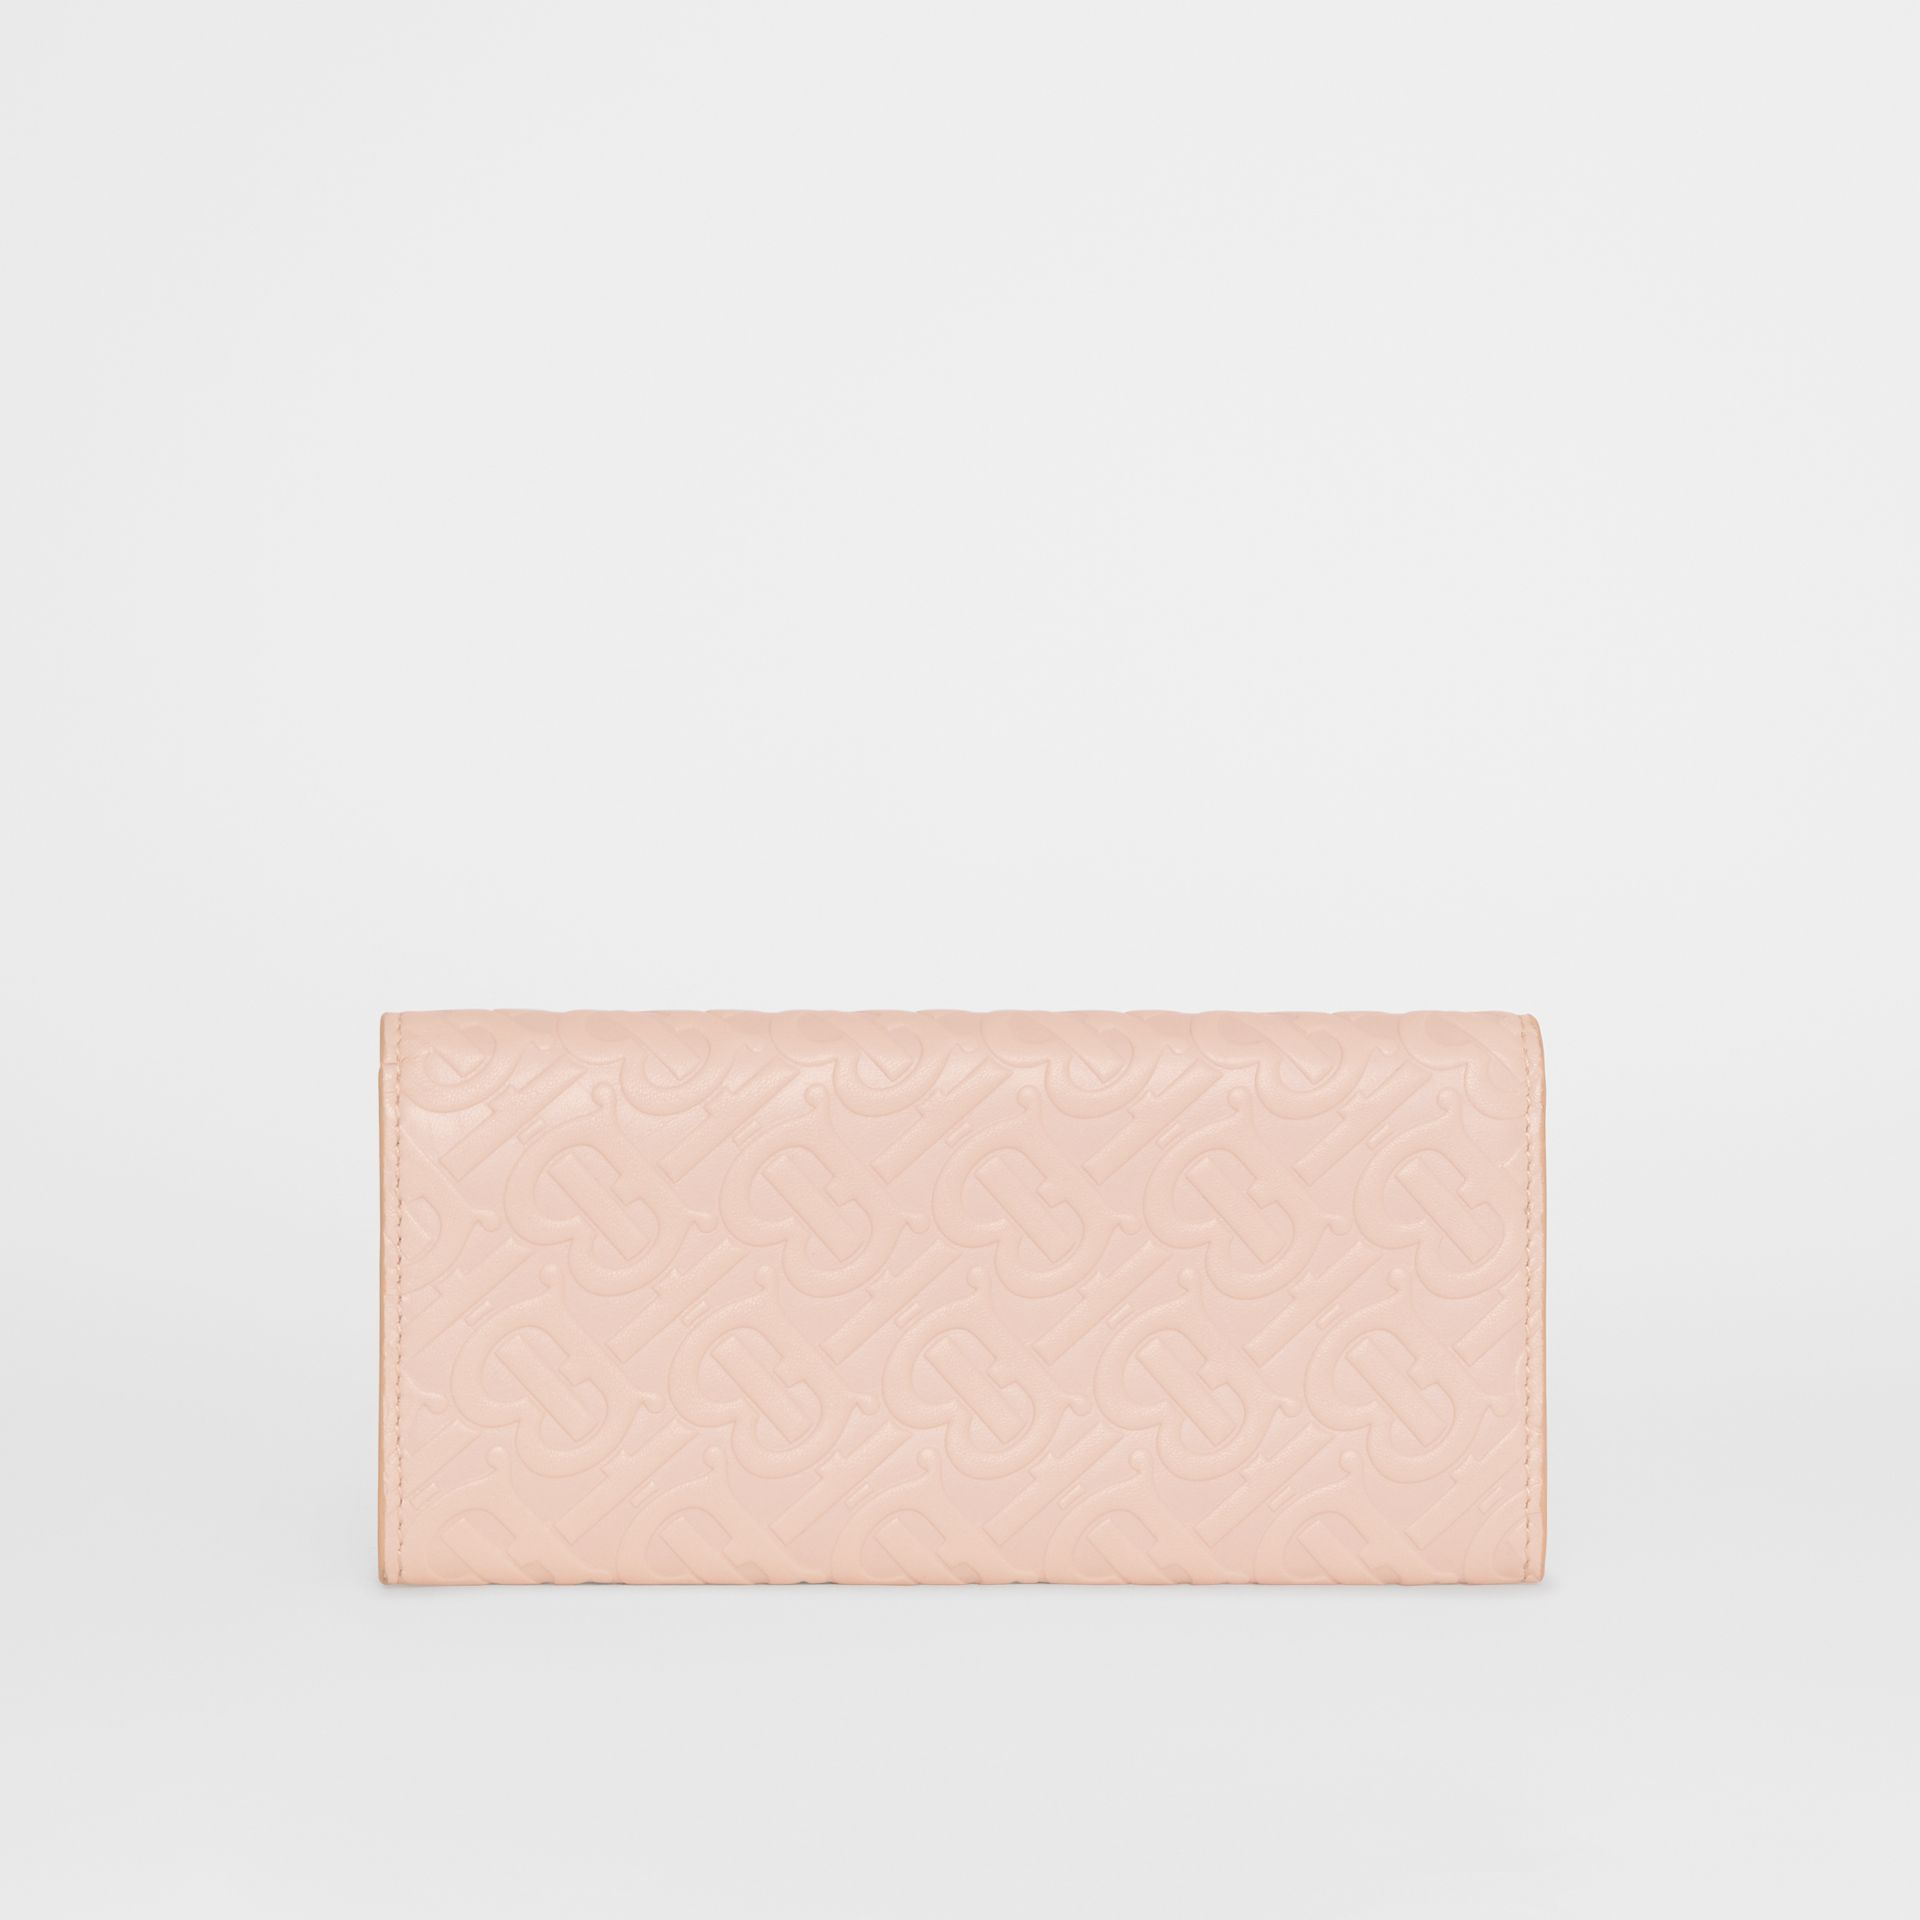 Monogram Leather Continental Wallet in Rose Beige - Women | Burberry - gallery image 5